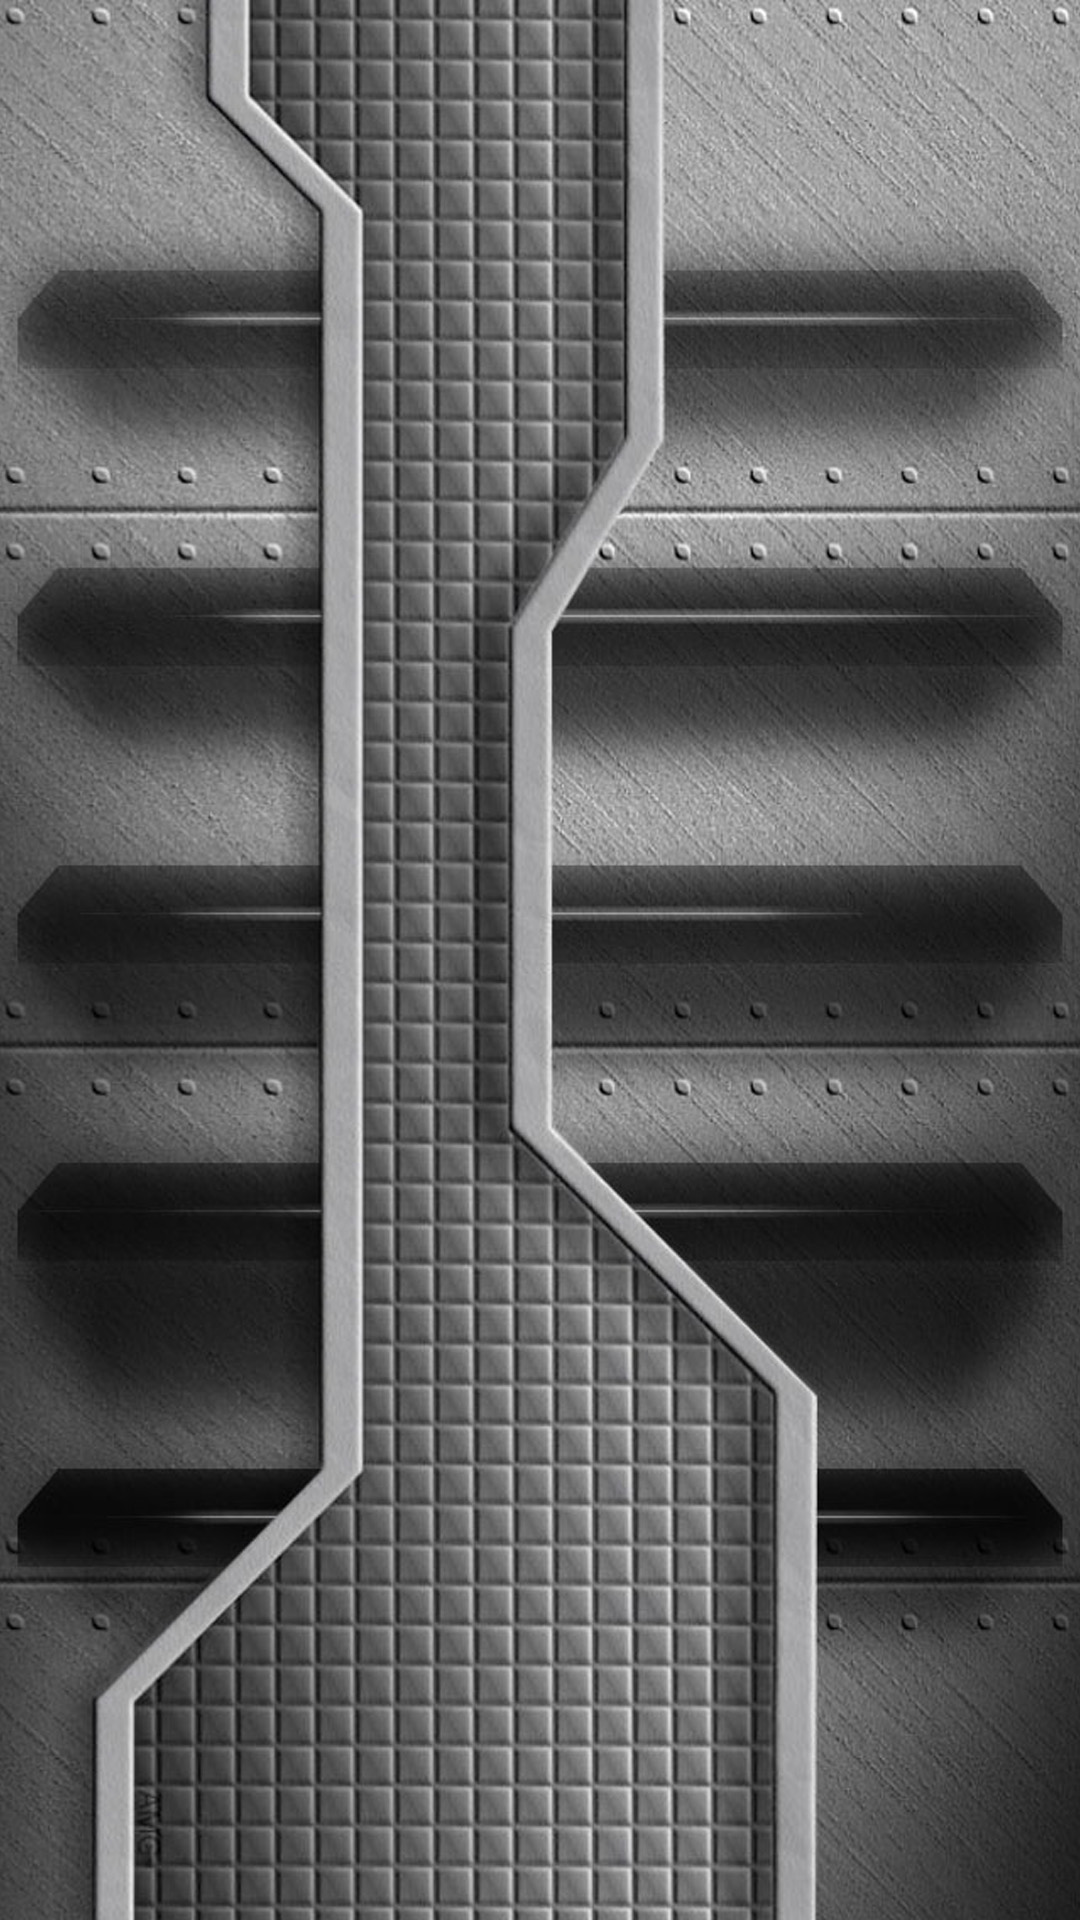 Shelf iPhone 6 Plus Wallpaper 69 iPhone 6 Plus Wallpapers HD 1080x1920